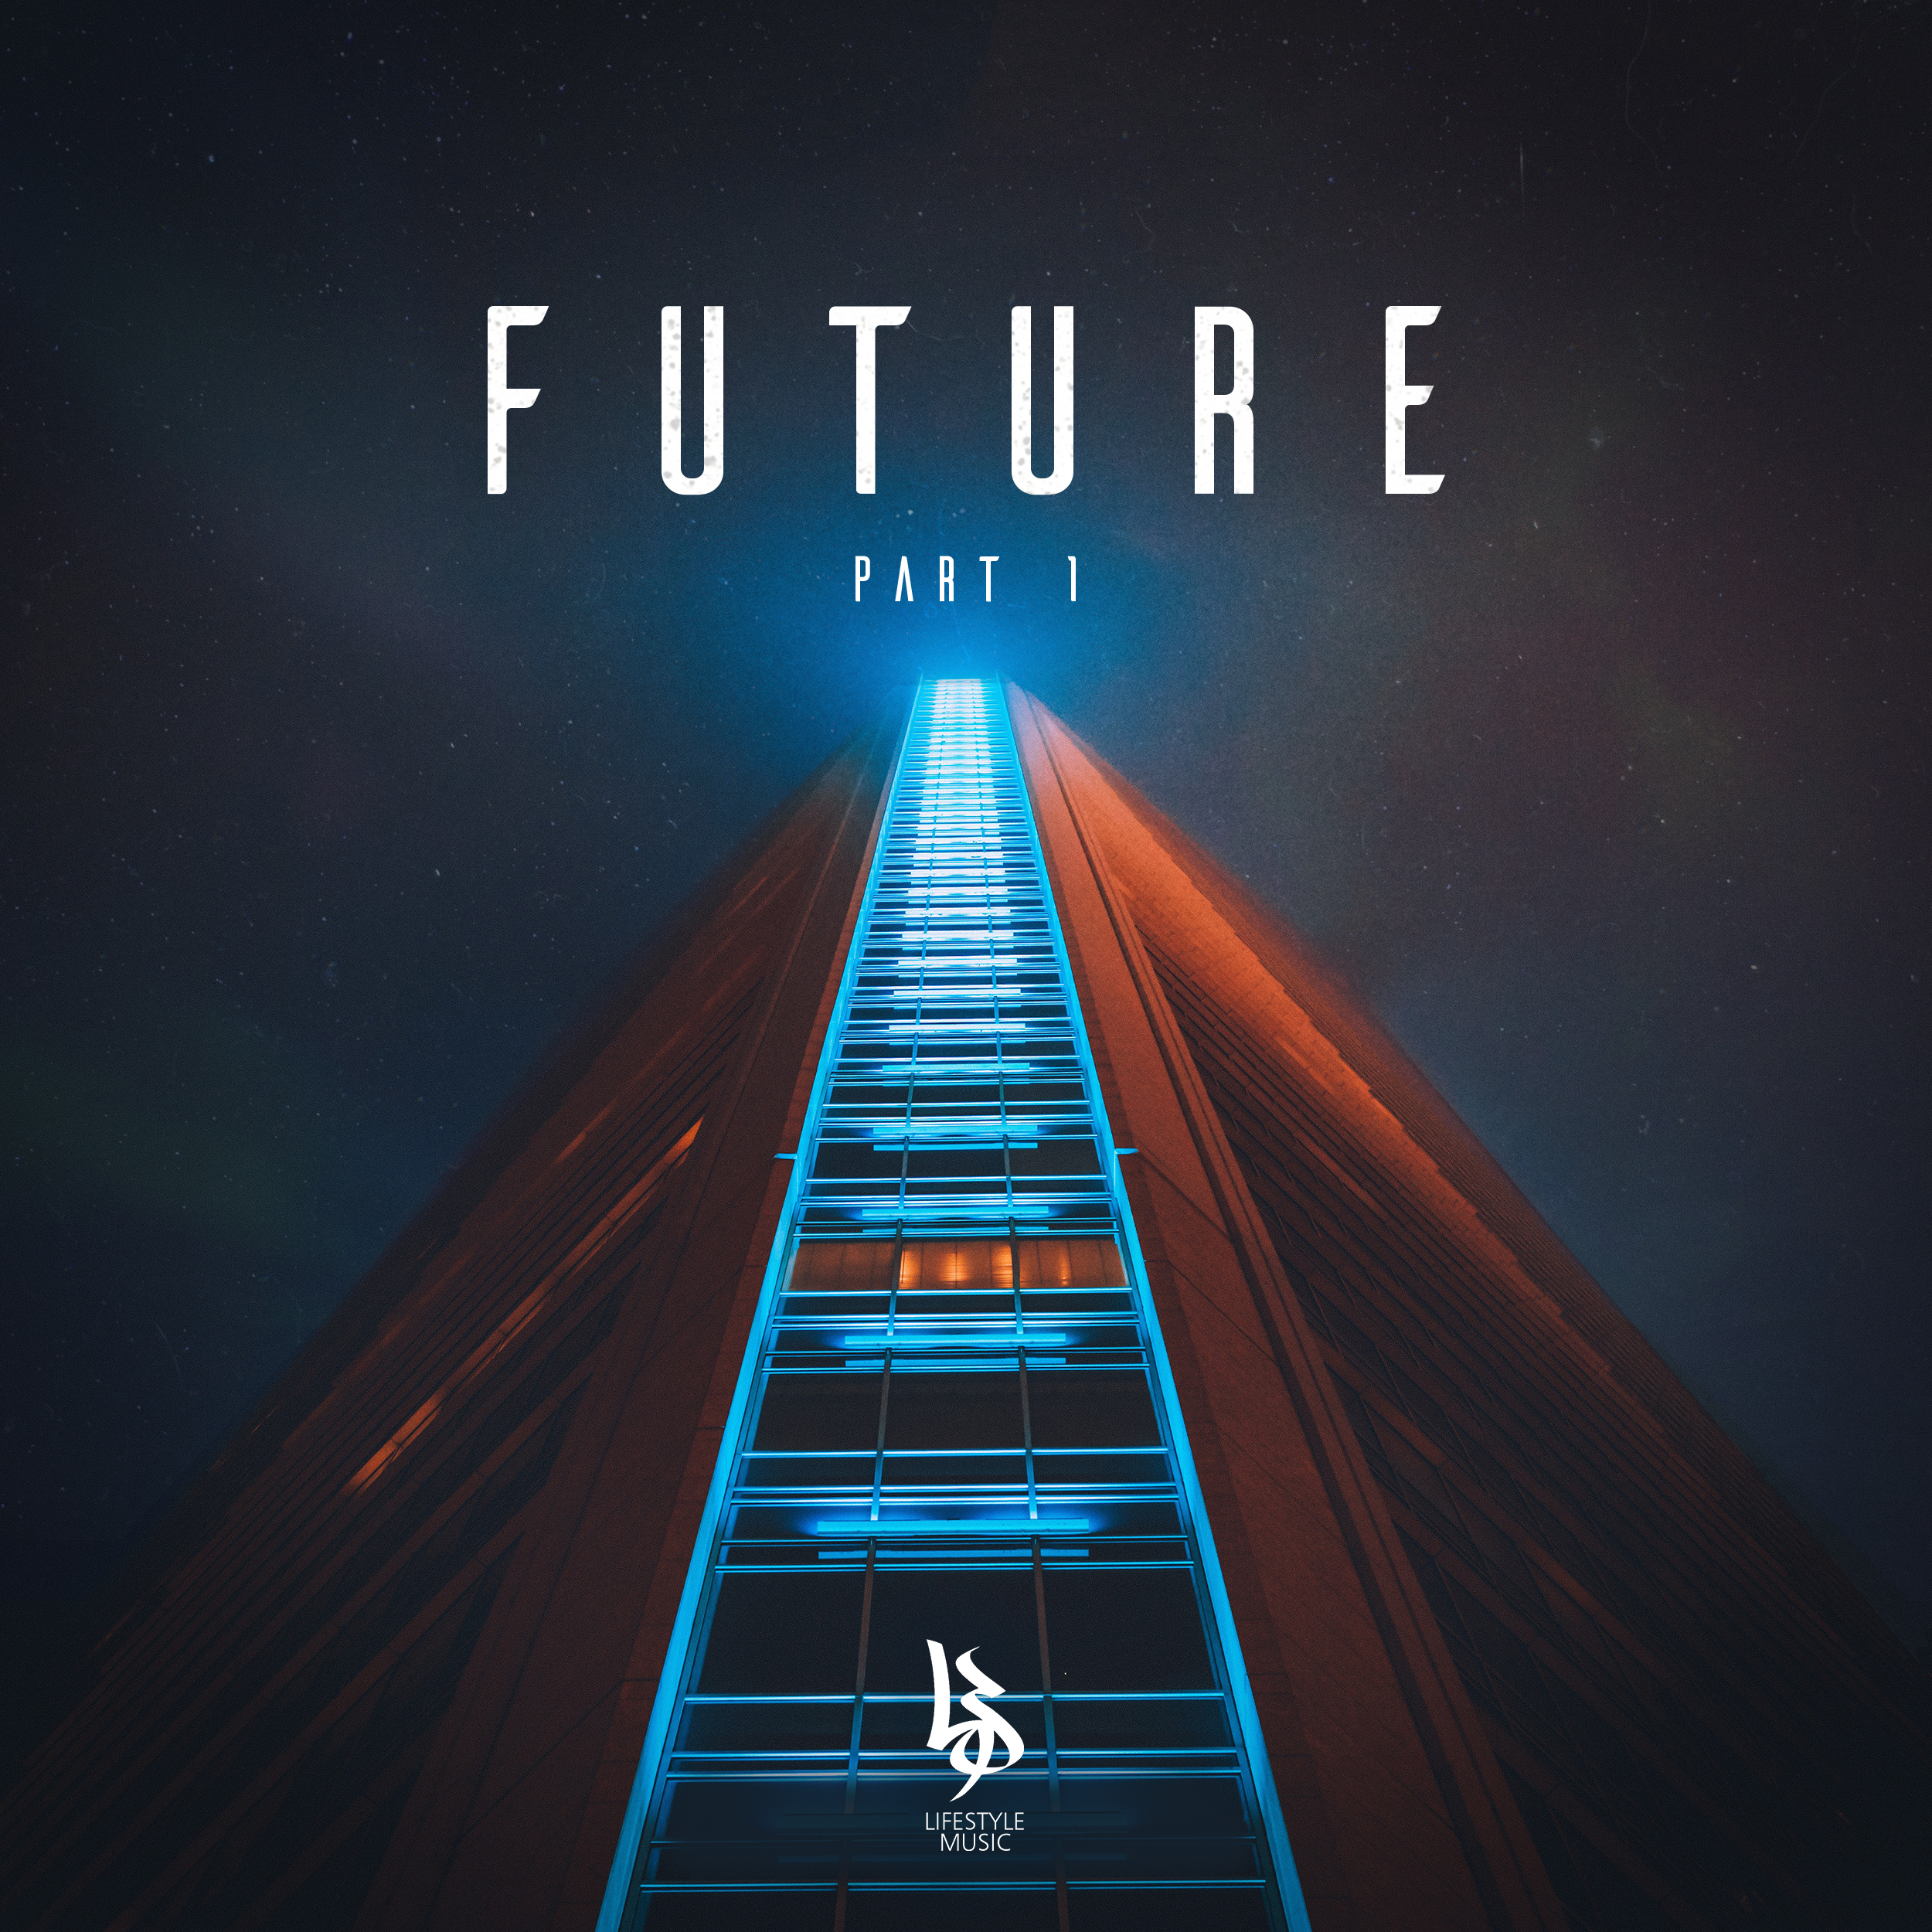 Lifestyle Music Future EP artwork by Jamie Boyle